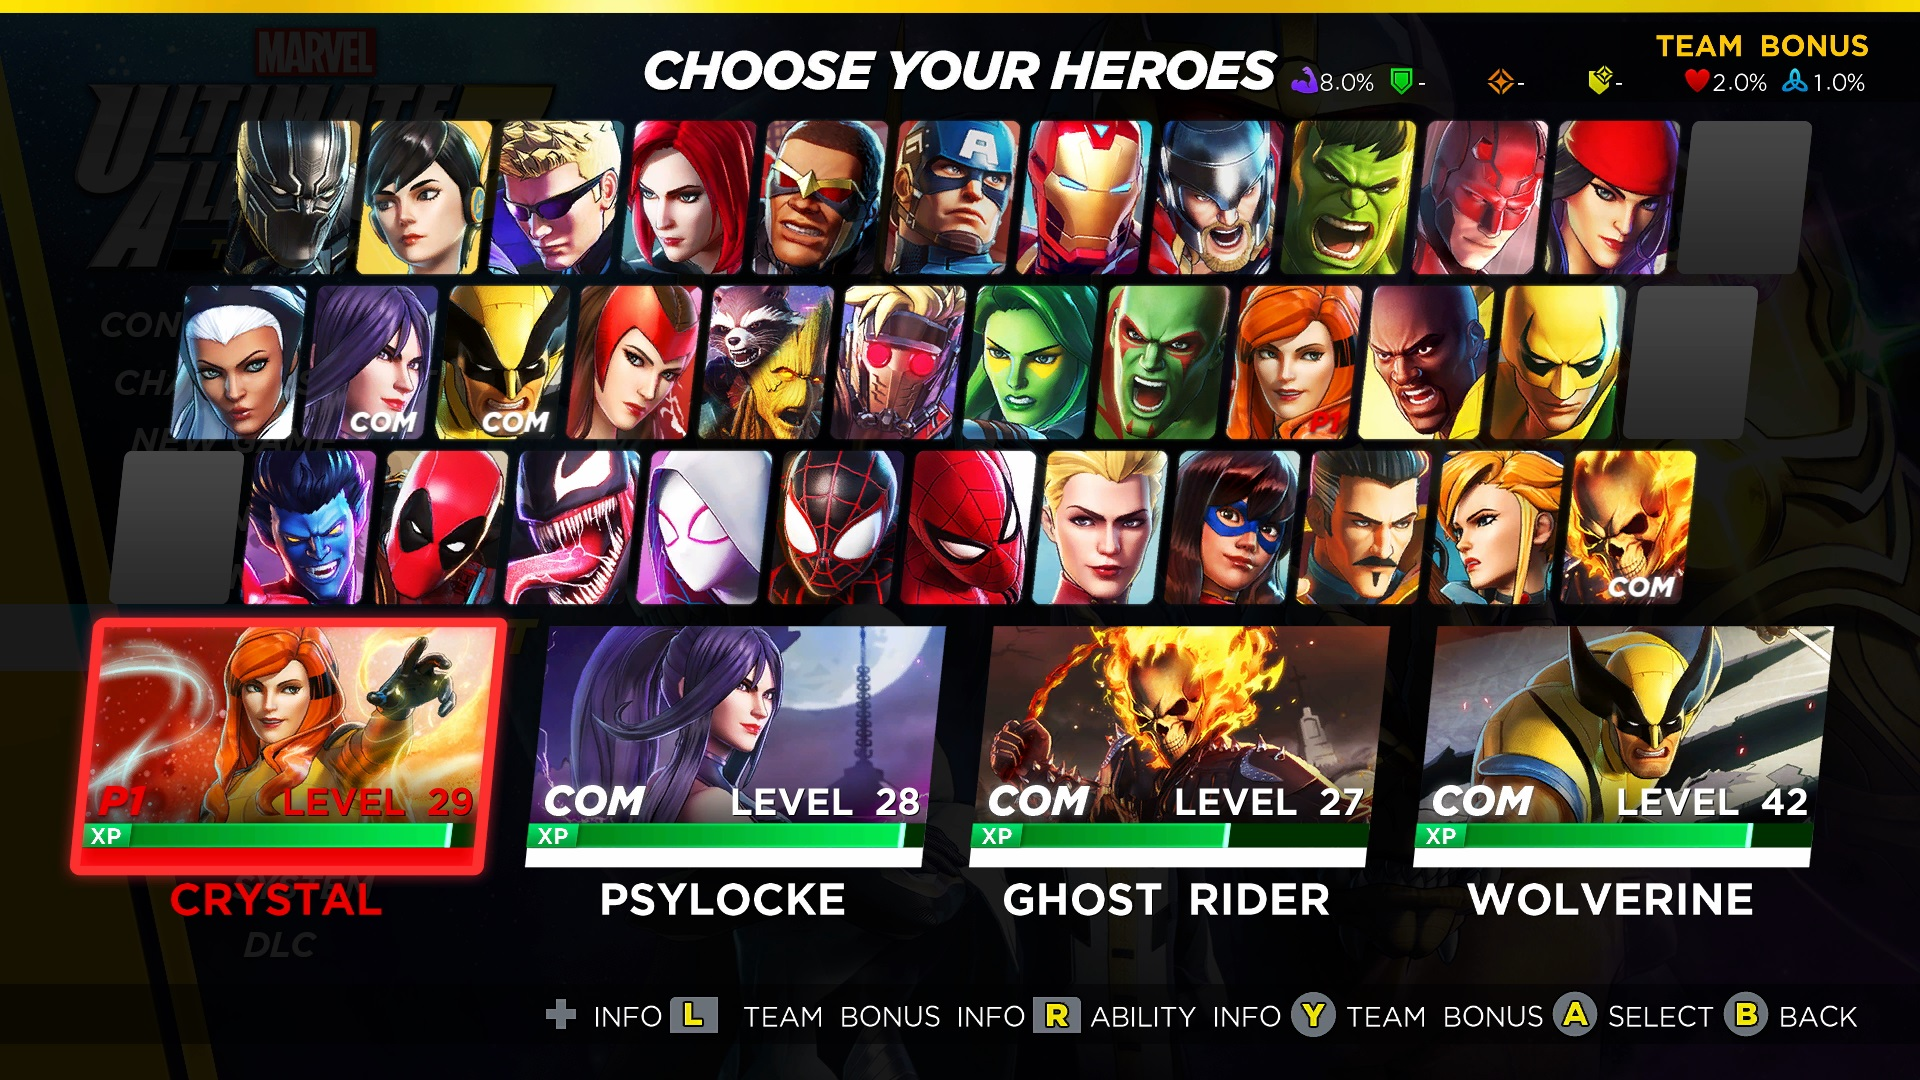 Marvel Ultimate Alliance 3 Costumes: How to Unlock and